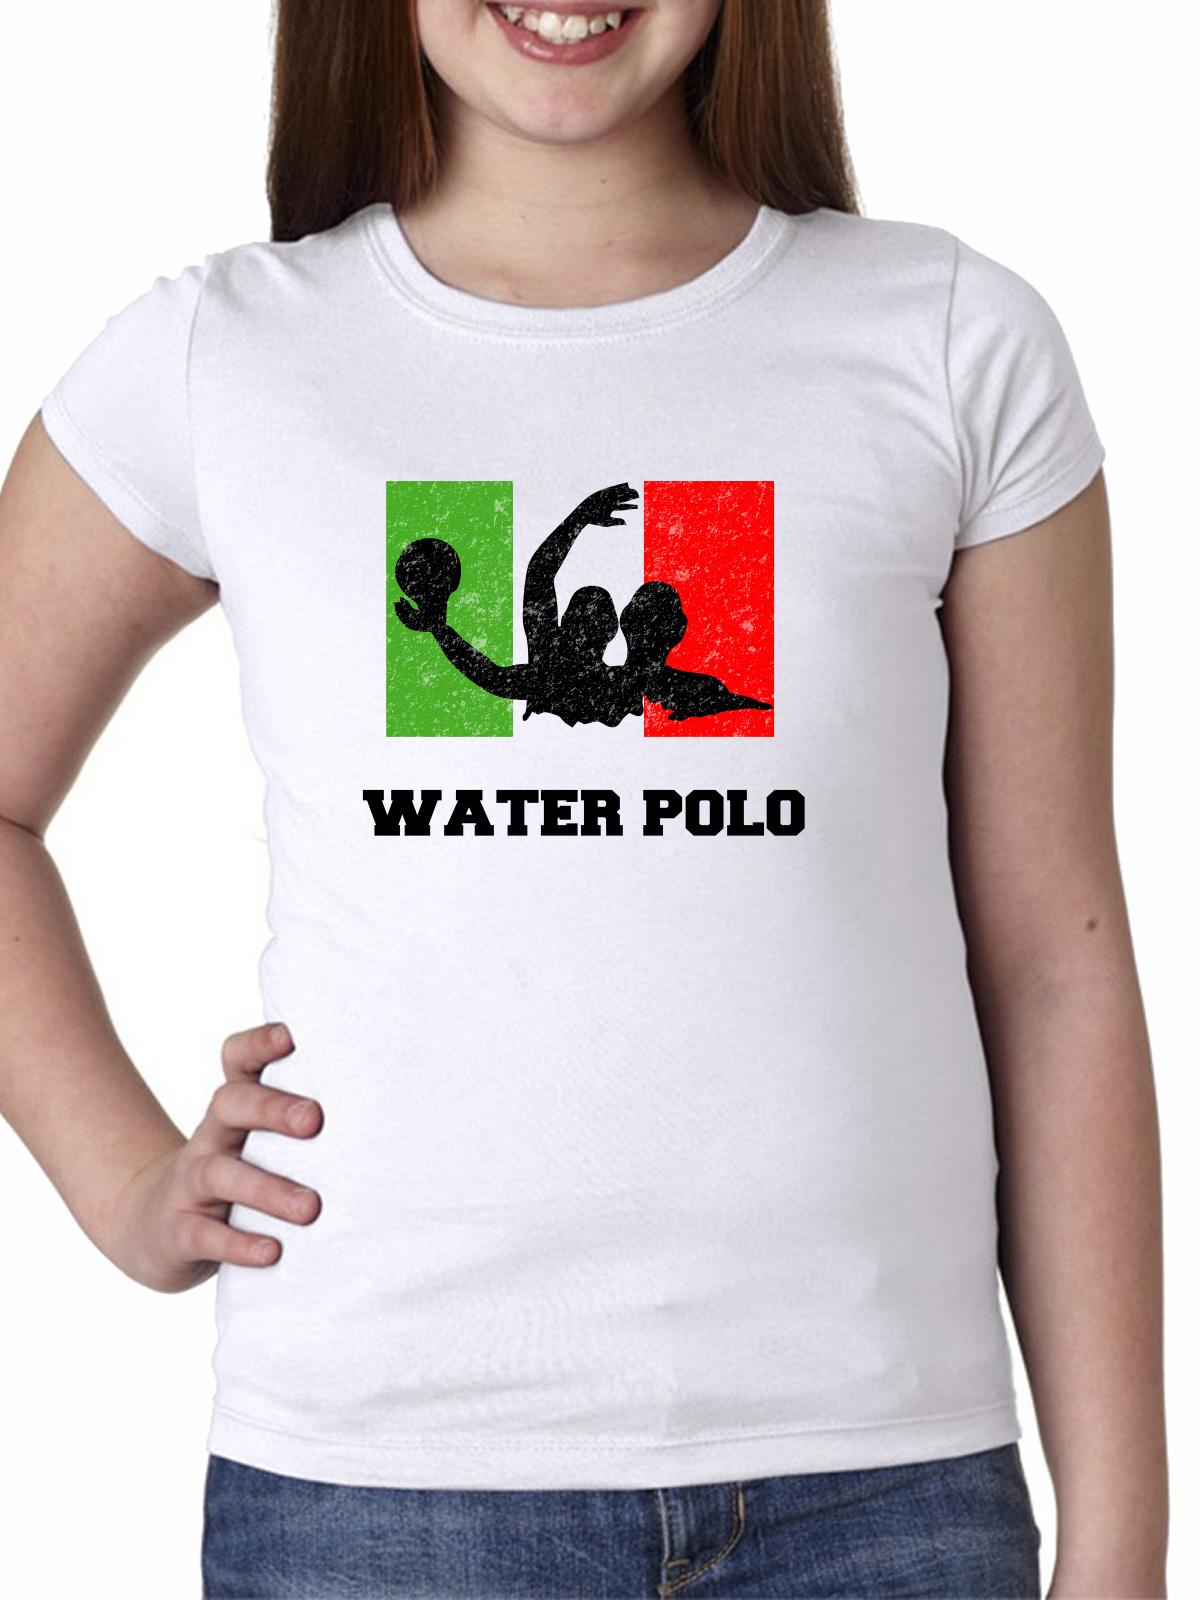 Italy Olympic Water Polo Flag Silhouette Girl's Cotton Youth T-Shirt by Hollywood Thread